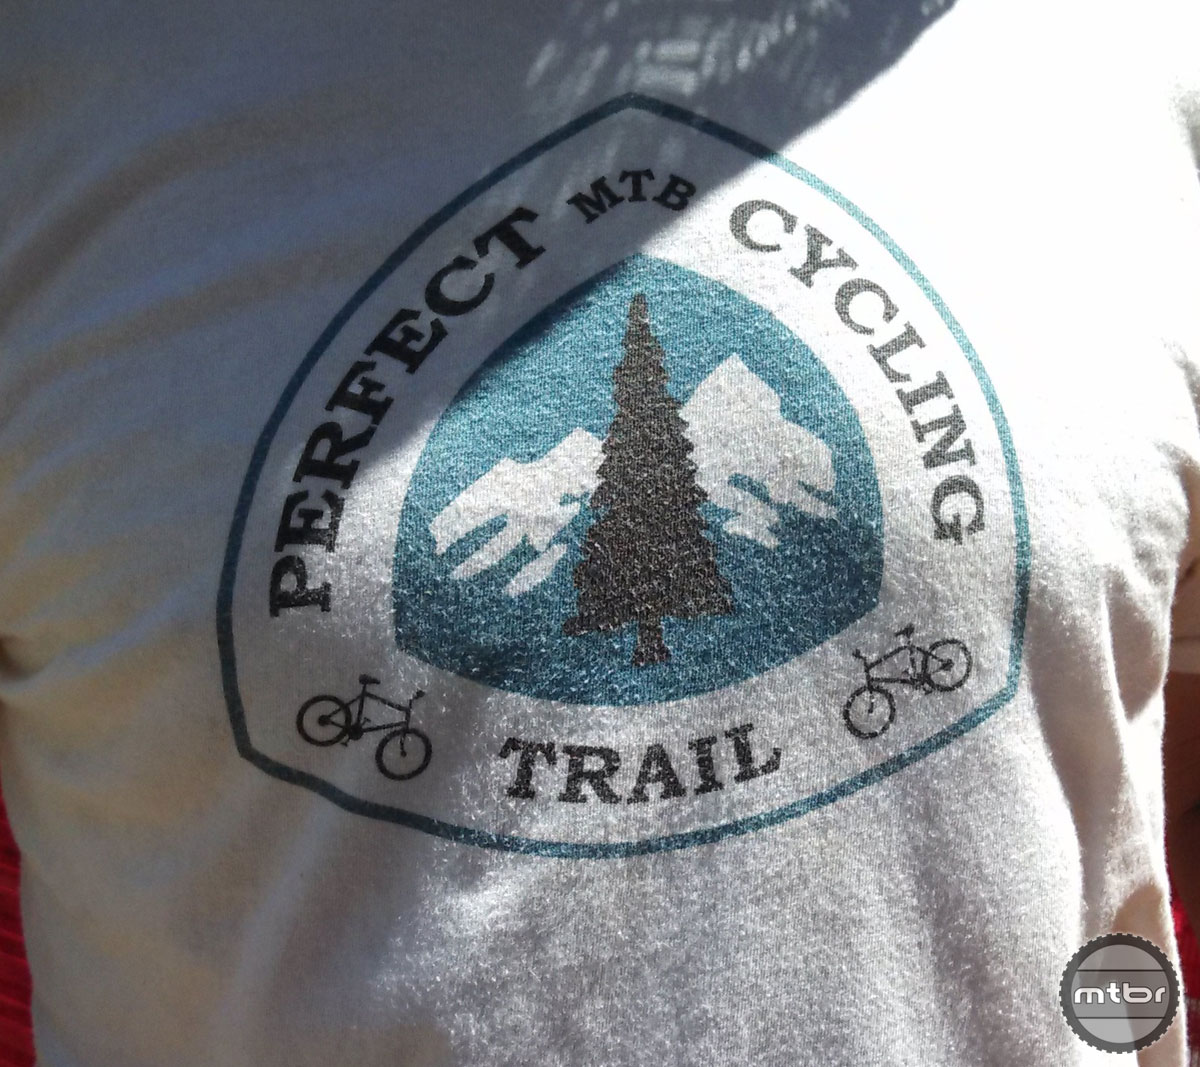 Let's help restore access to this amazing trail.